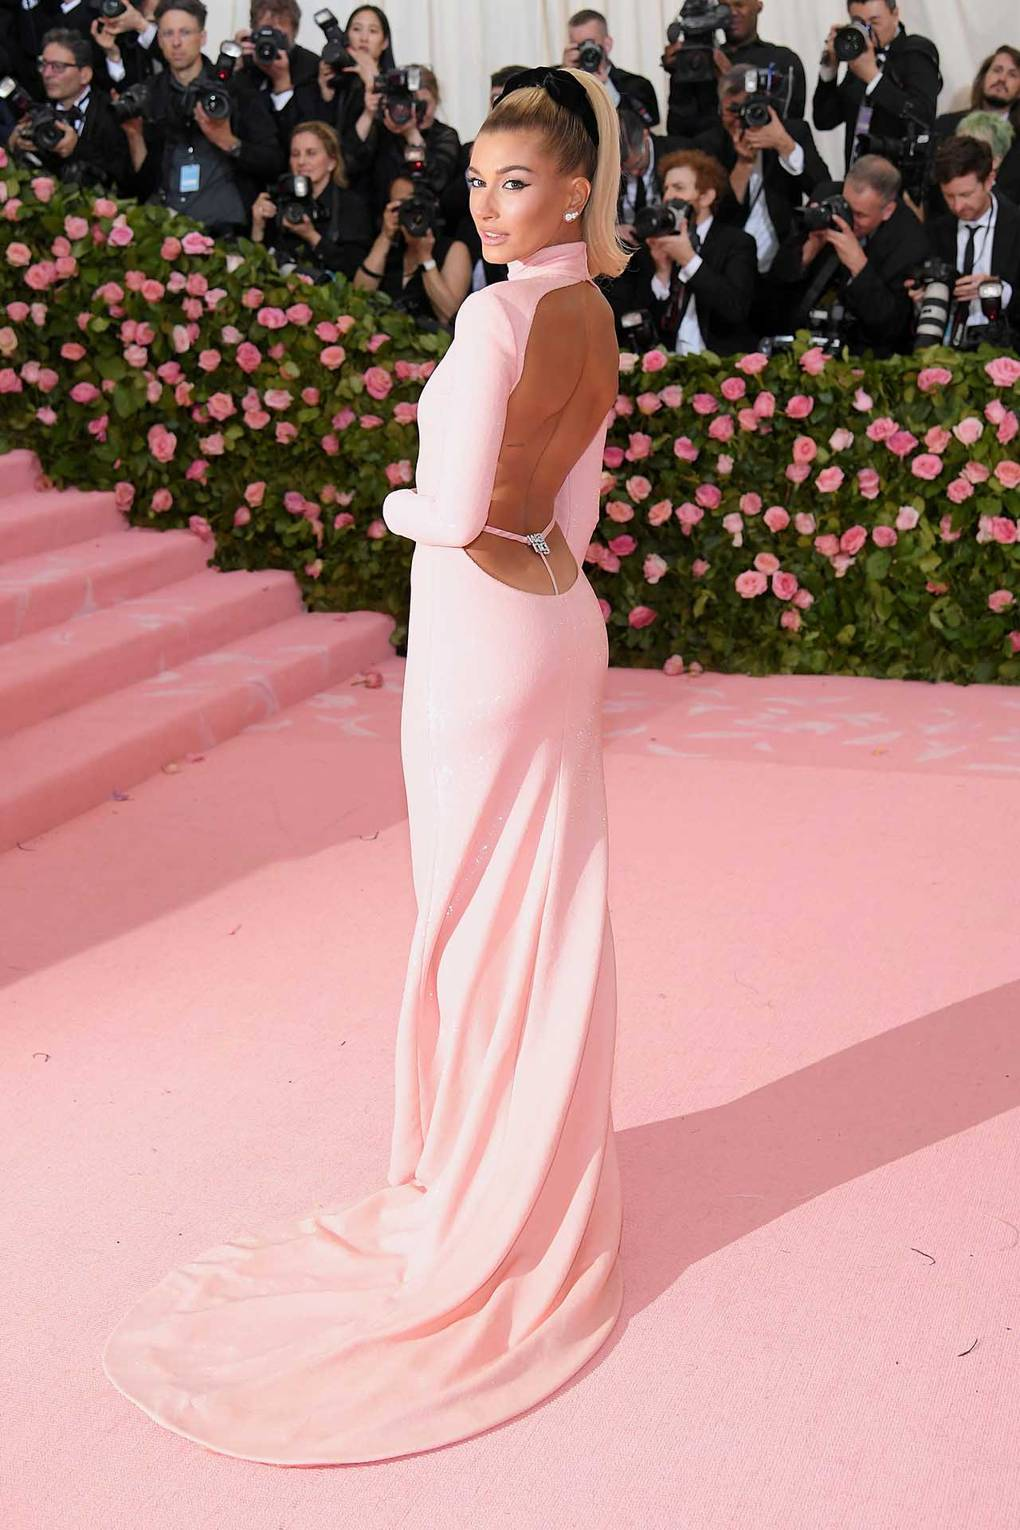 Hailey Bieber wearing Alexander Wang - Wang does no wrong! I love this cute gown which highlights Hailey's cheeky side. Who know a G-sting backless dress could be so cute?! This high neck pastel pink sequin design screams millennial camp, finished off with Bvlgari diamond earrings and a classic black bow with perfect pony tail.